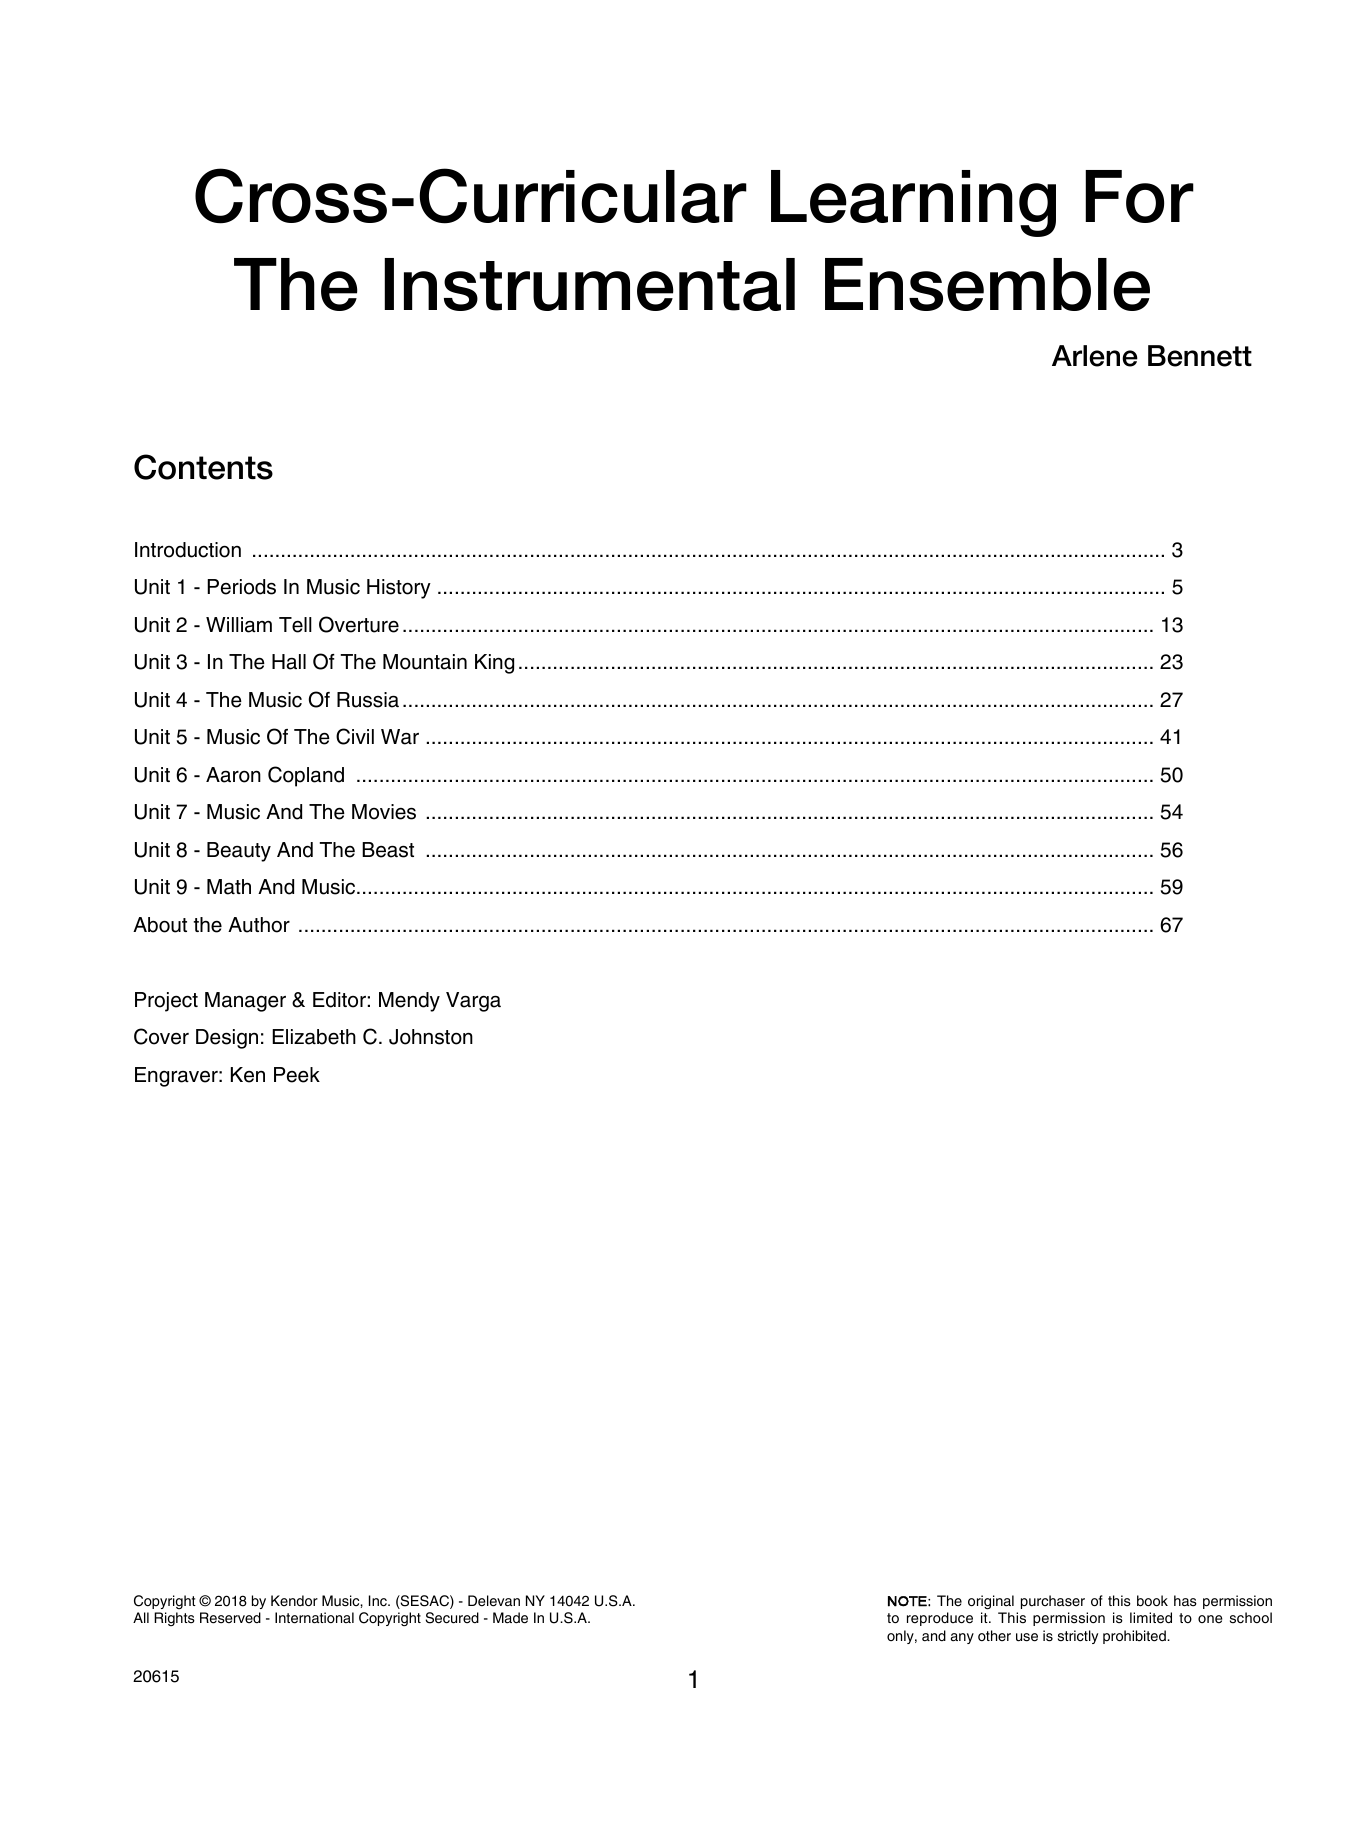 Cross-curricular Learning For The Instrumental Ensemble Sheet Music